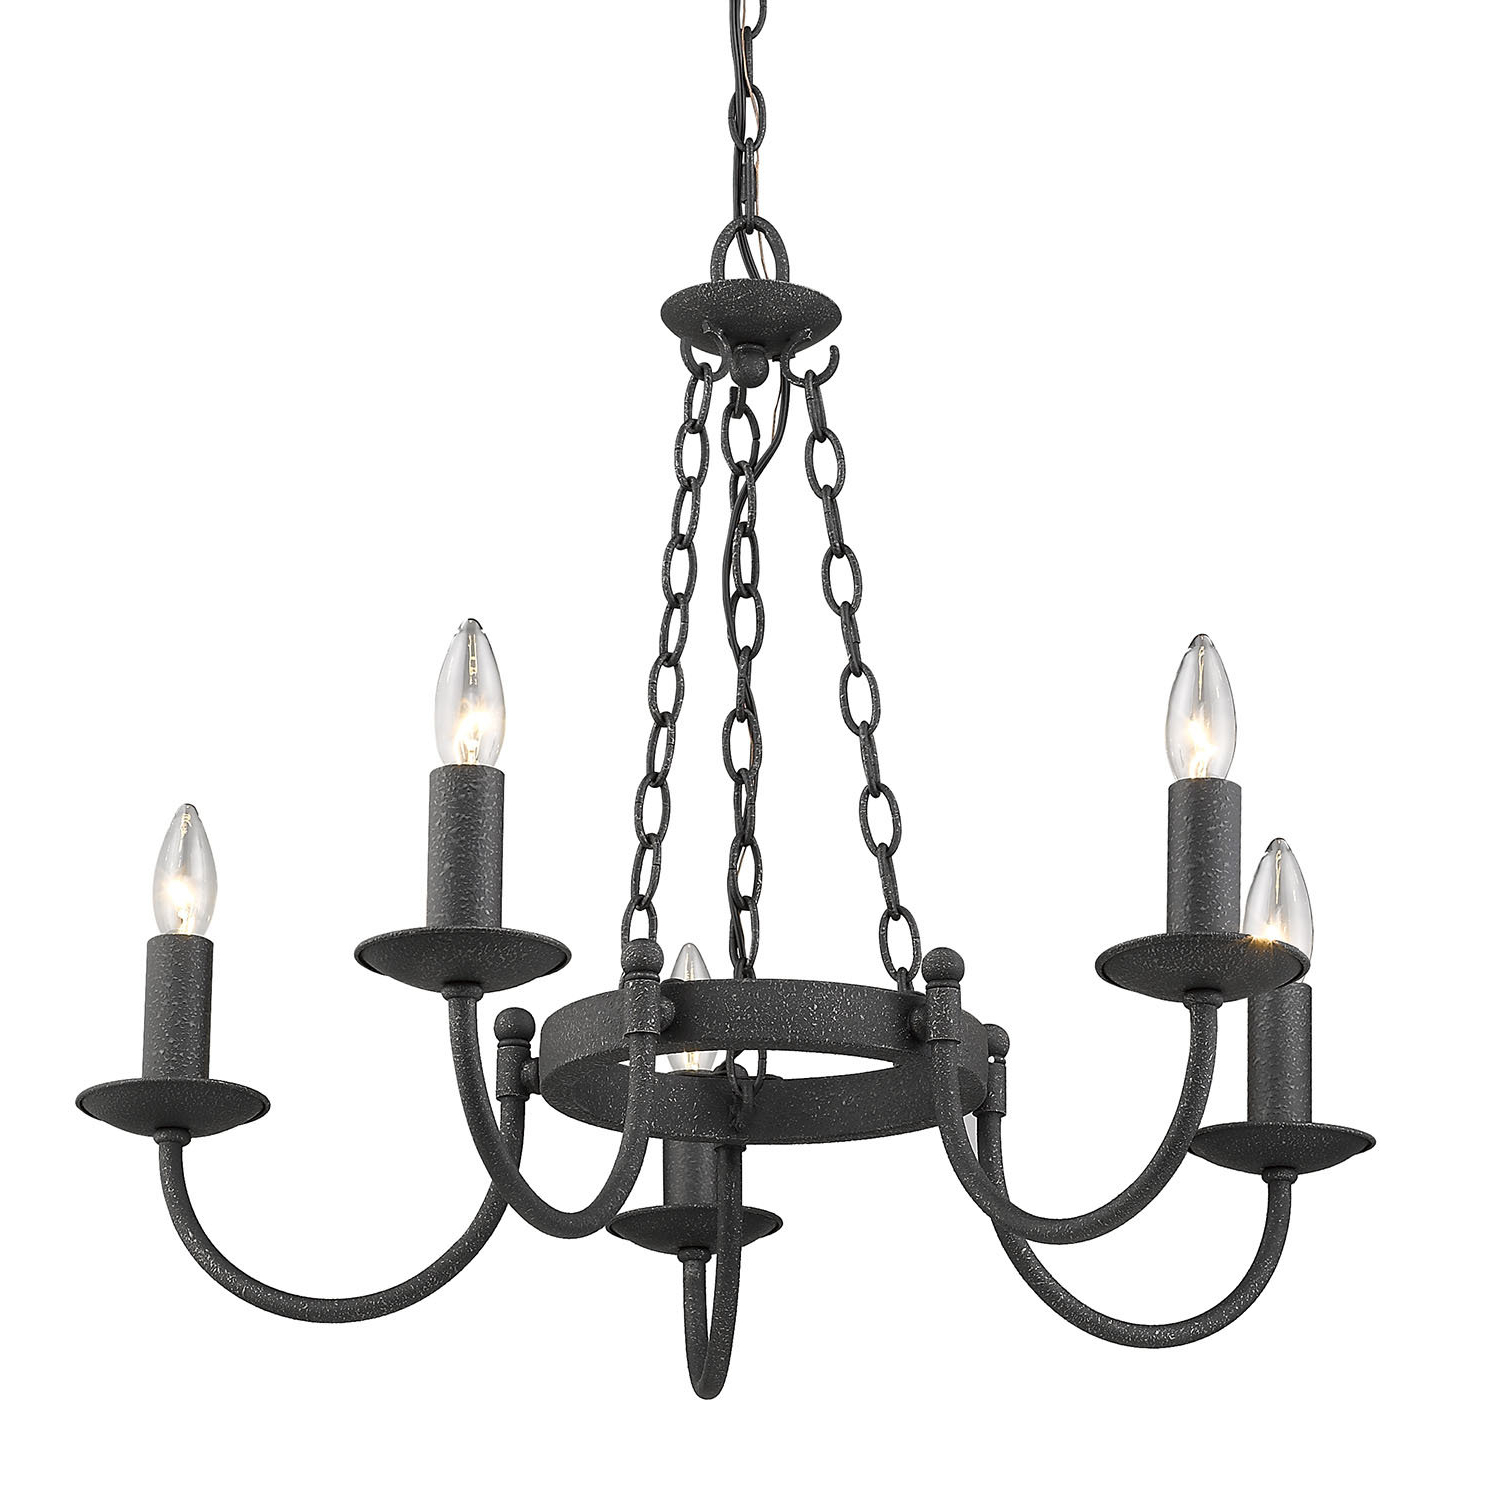 Latest Shaylee 5 Light Candle Style Chandeliers With Regard To Barcroft 5 Light Candle Style Chandelier (View 3 of 20)